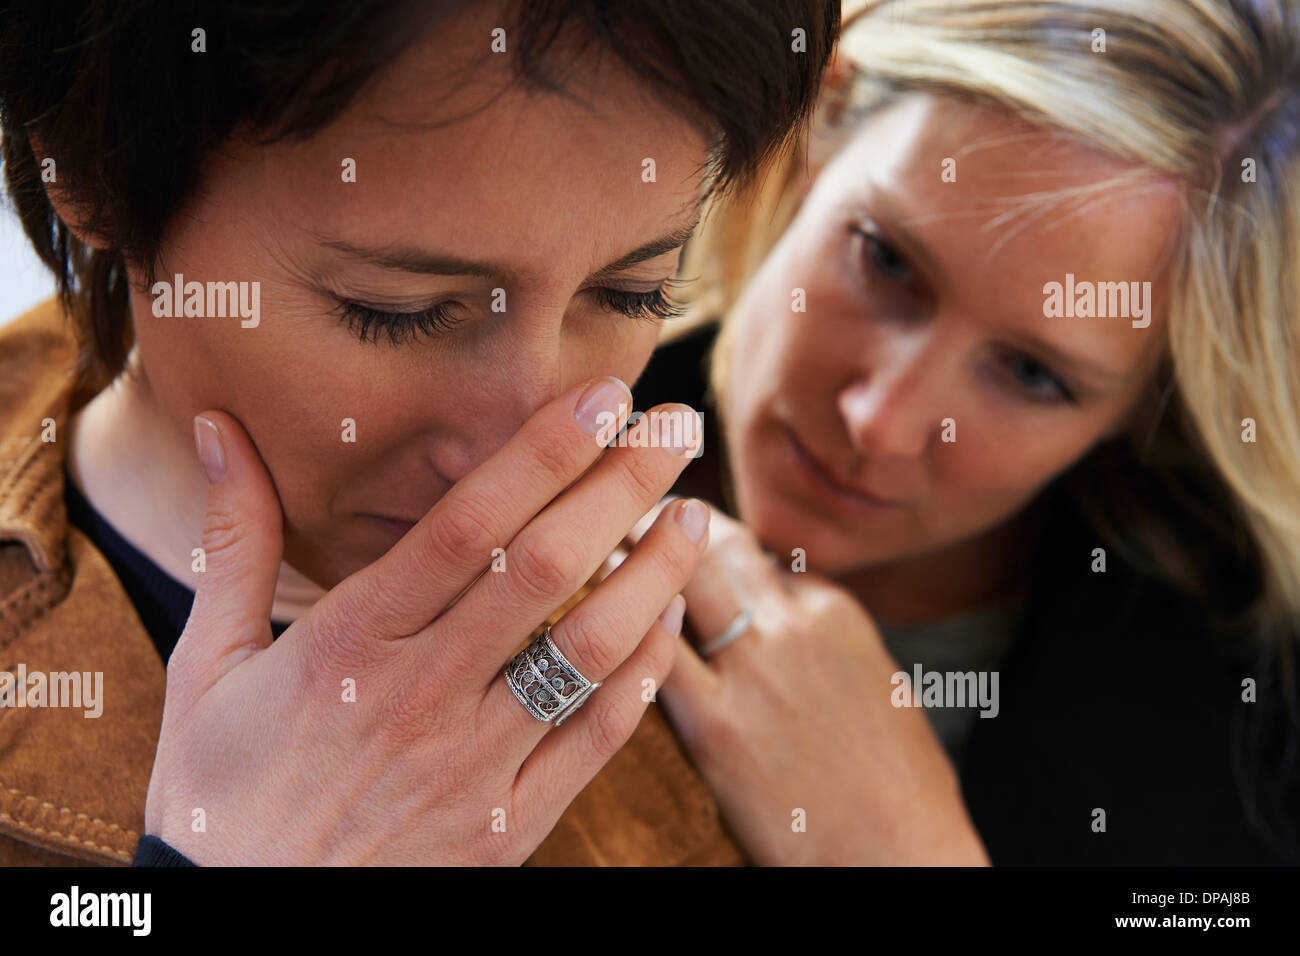 Close up of anxious woman with supportive friend - Stock Image